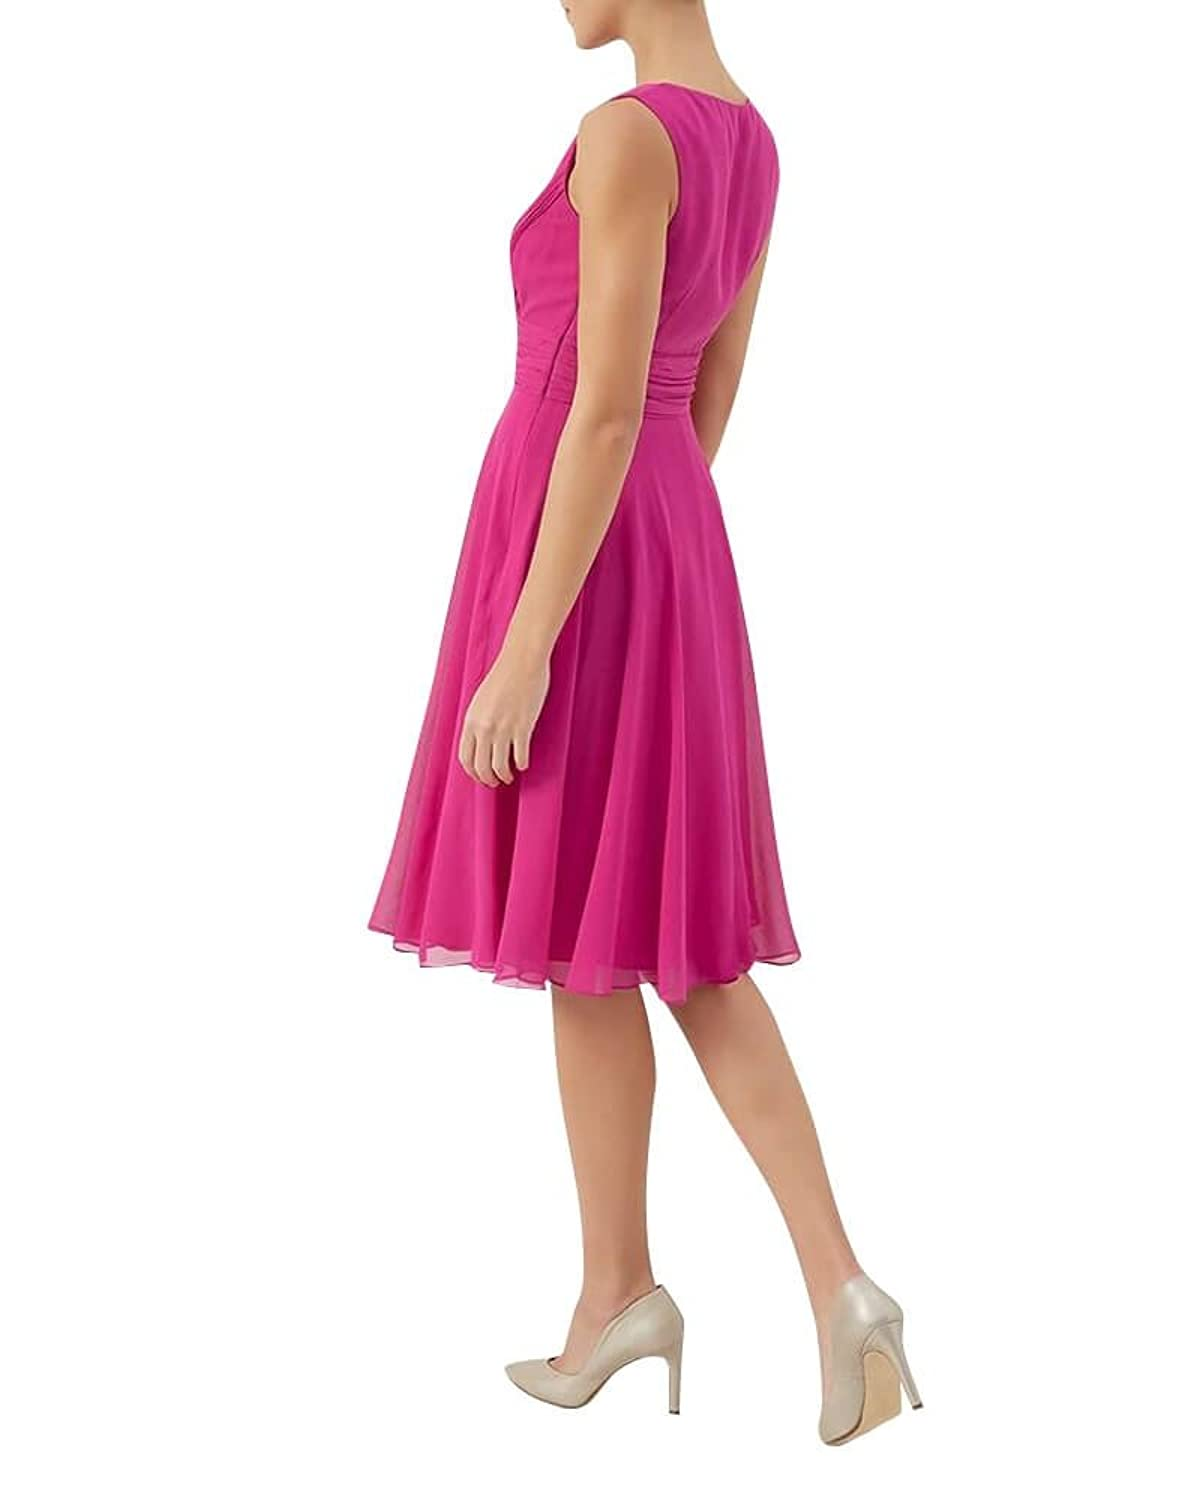 LoveURAPpearance Women's Lara Dress - Regular and Plus Size